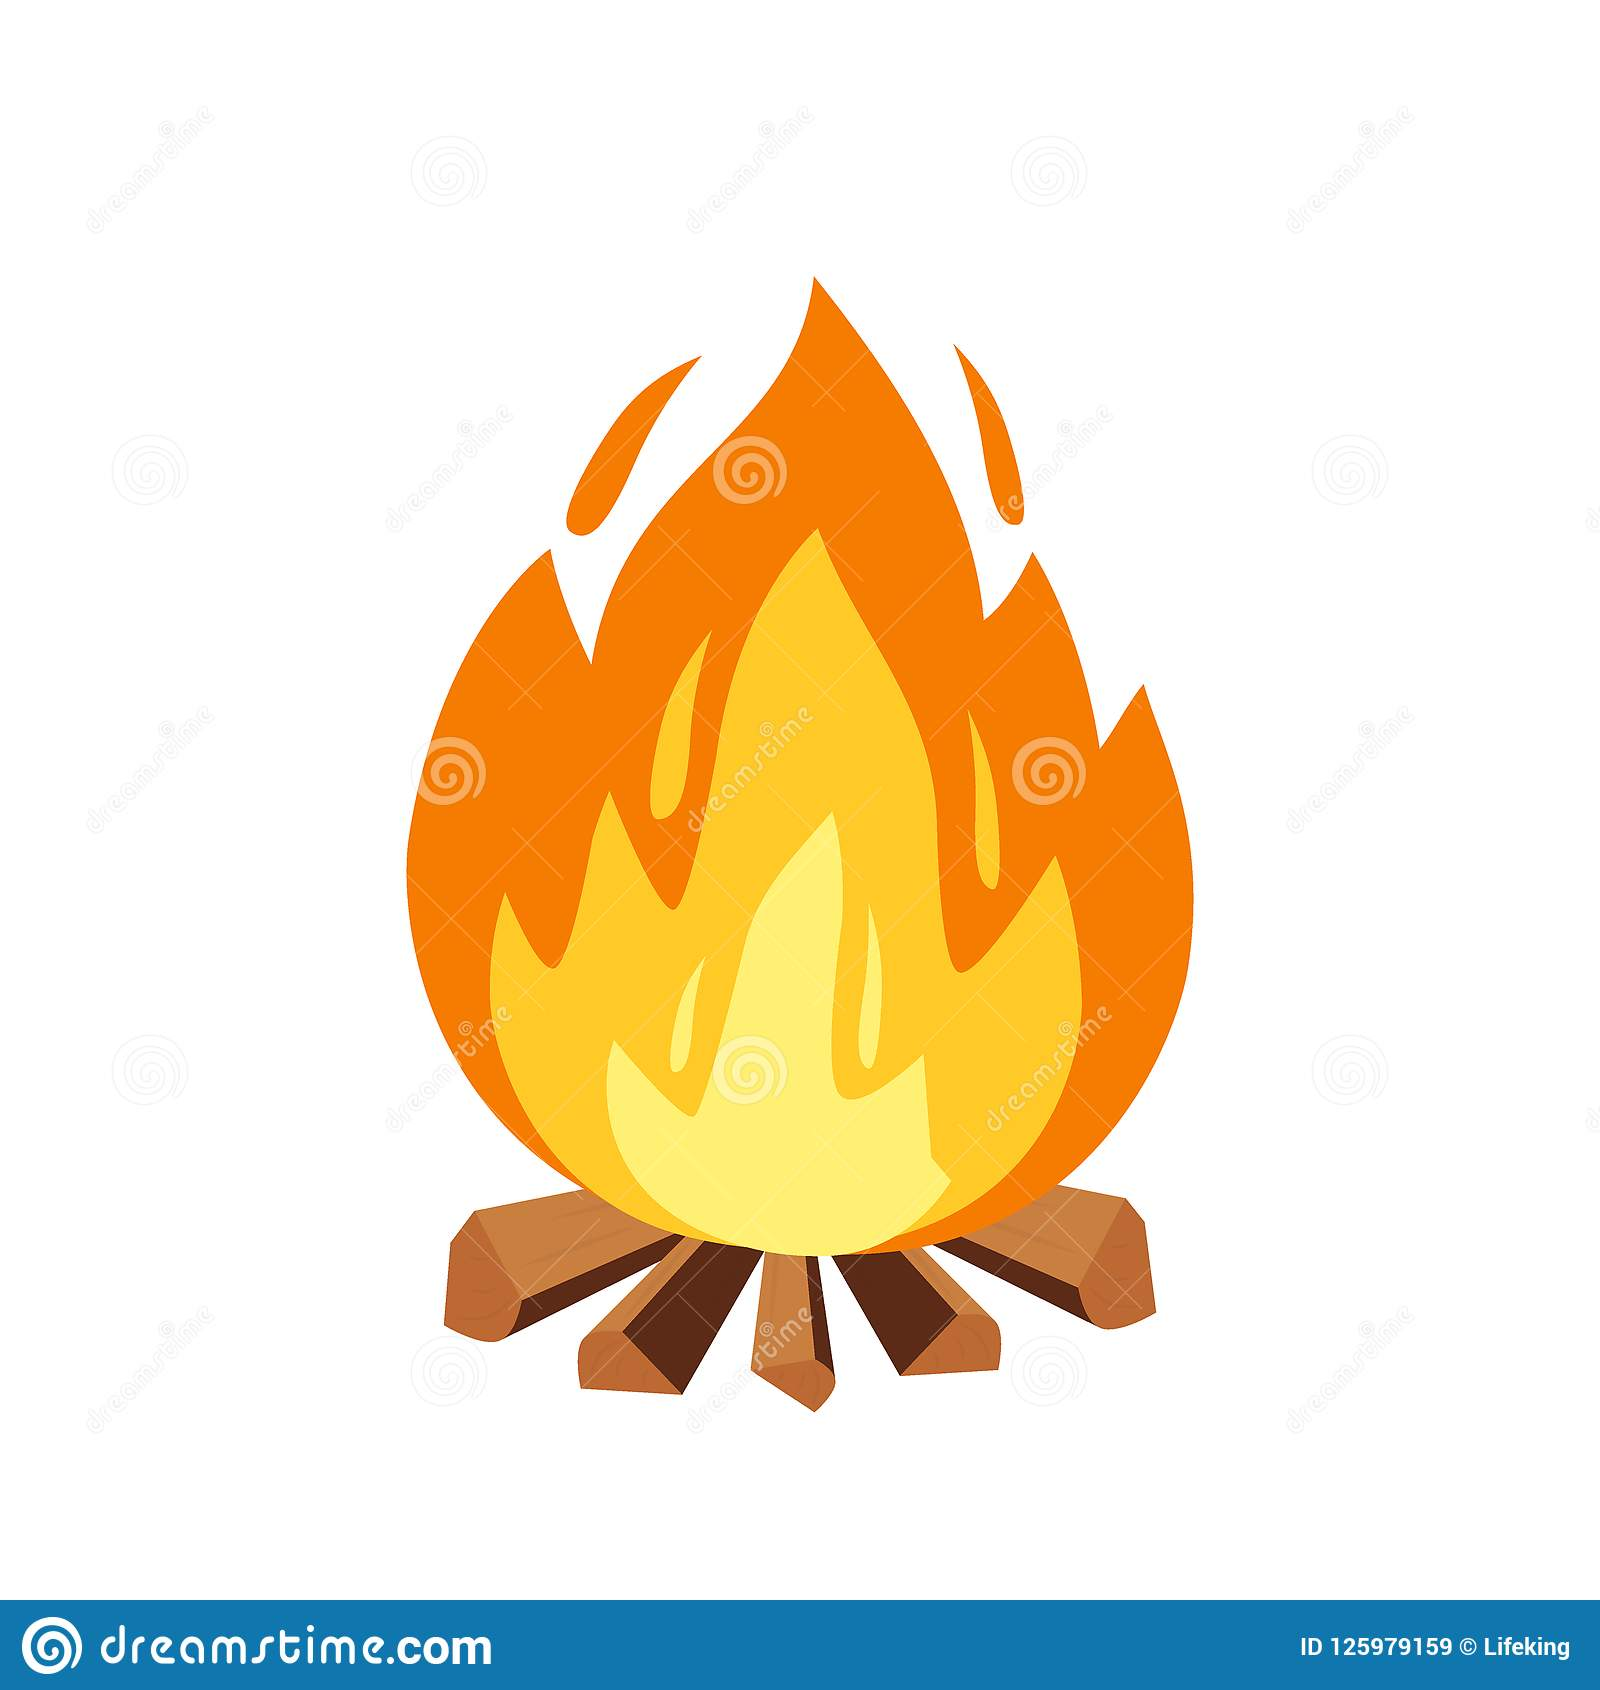 Vector campfire and camping sign in cartoon style illustration. Burning  wood pile a5aa7281d649